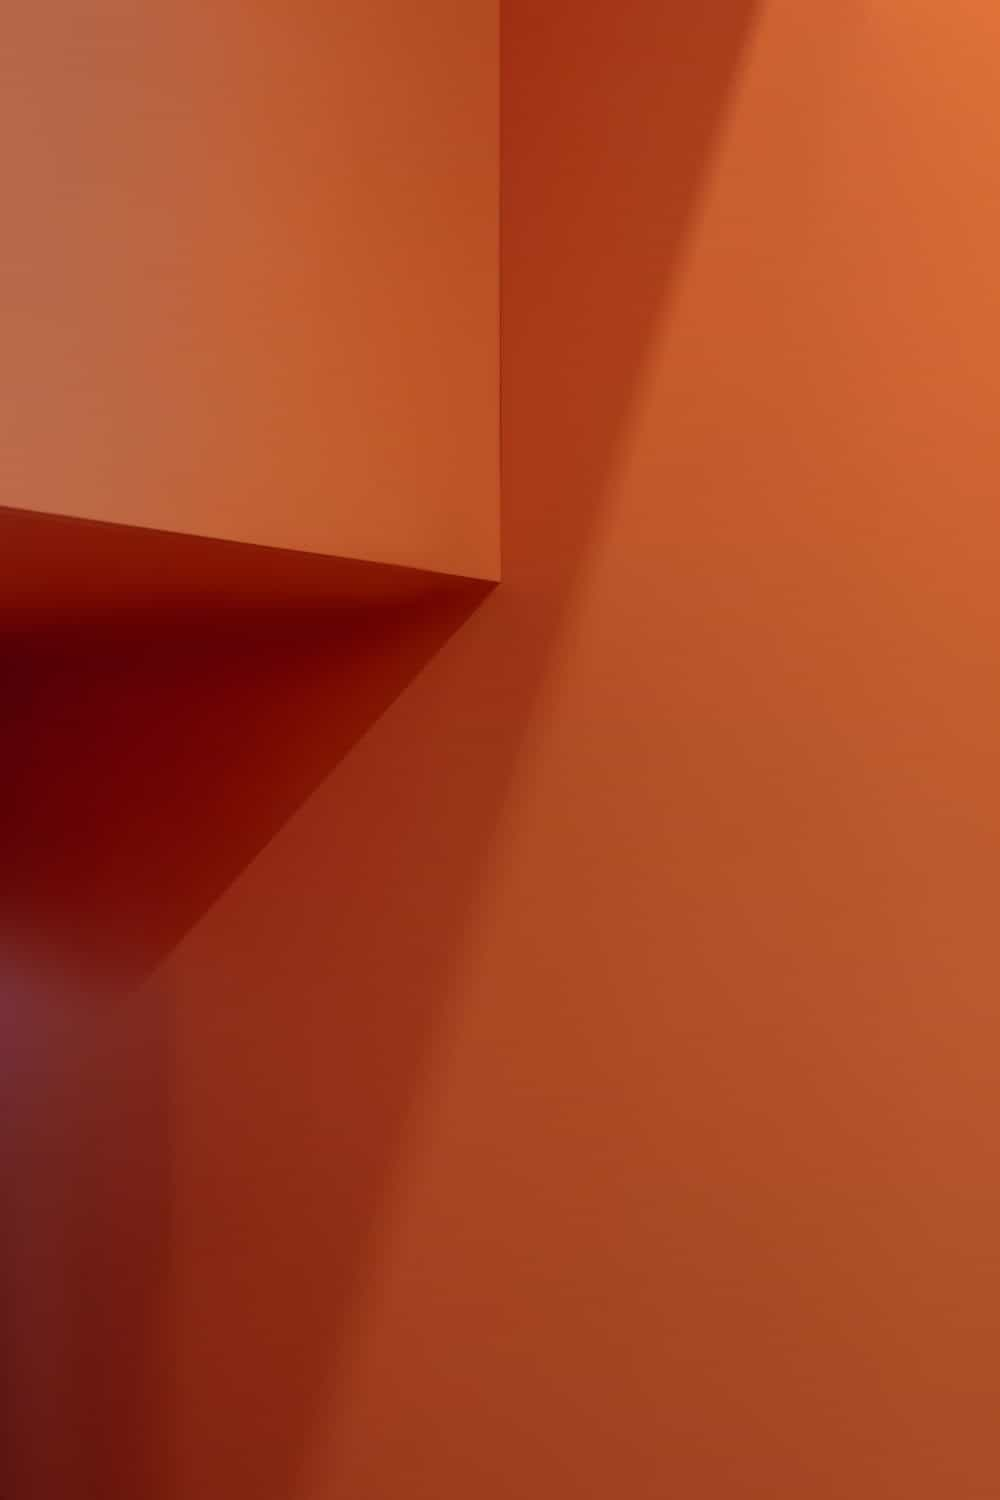 This is a close inspection of the orange entryway and its matte material.